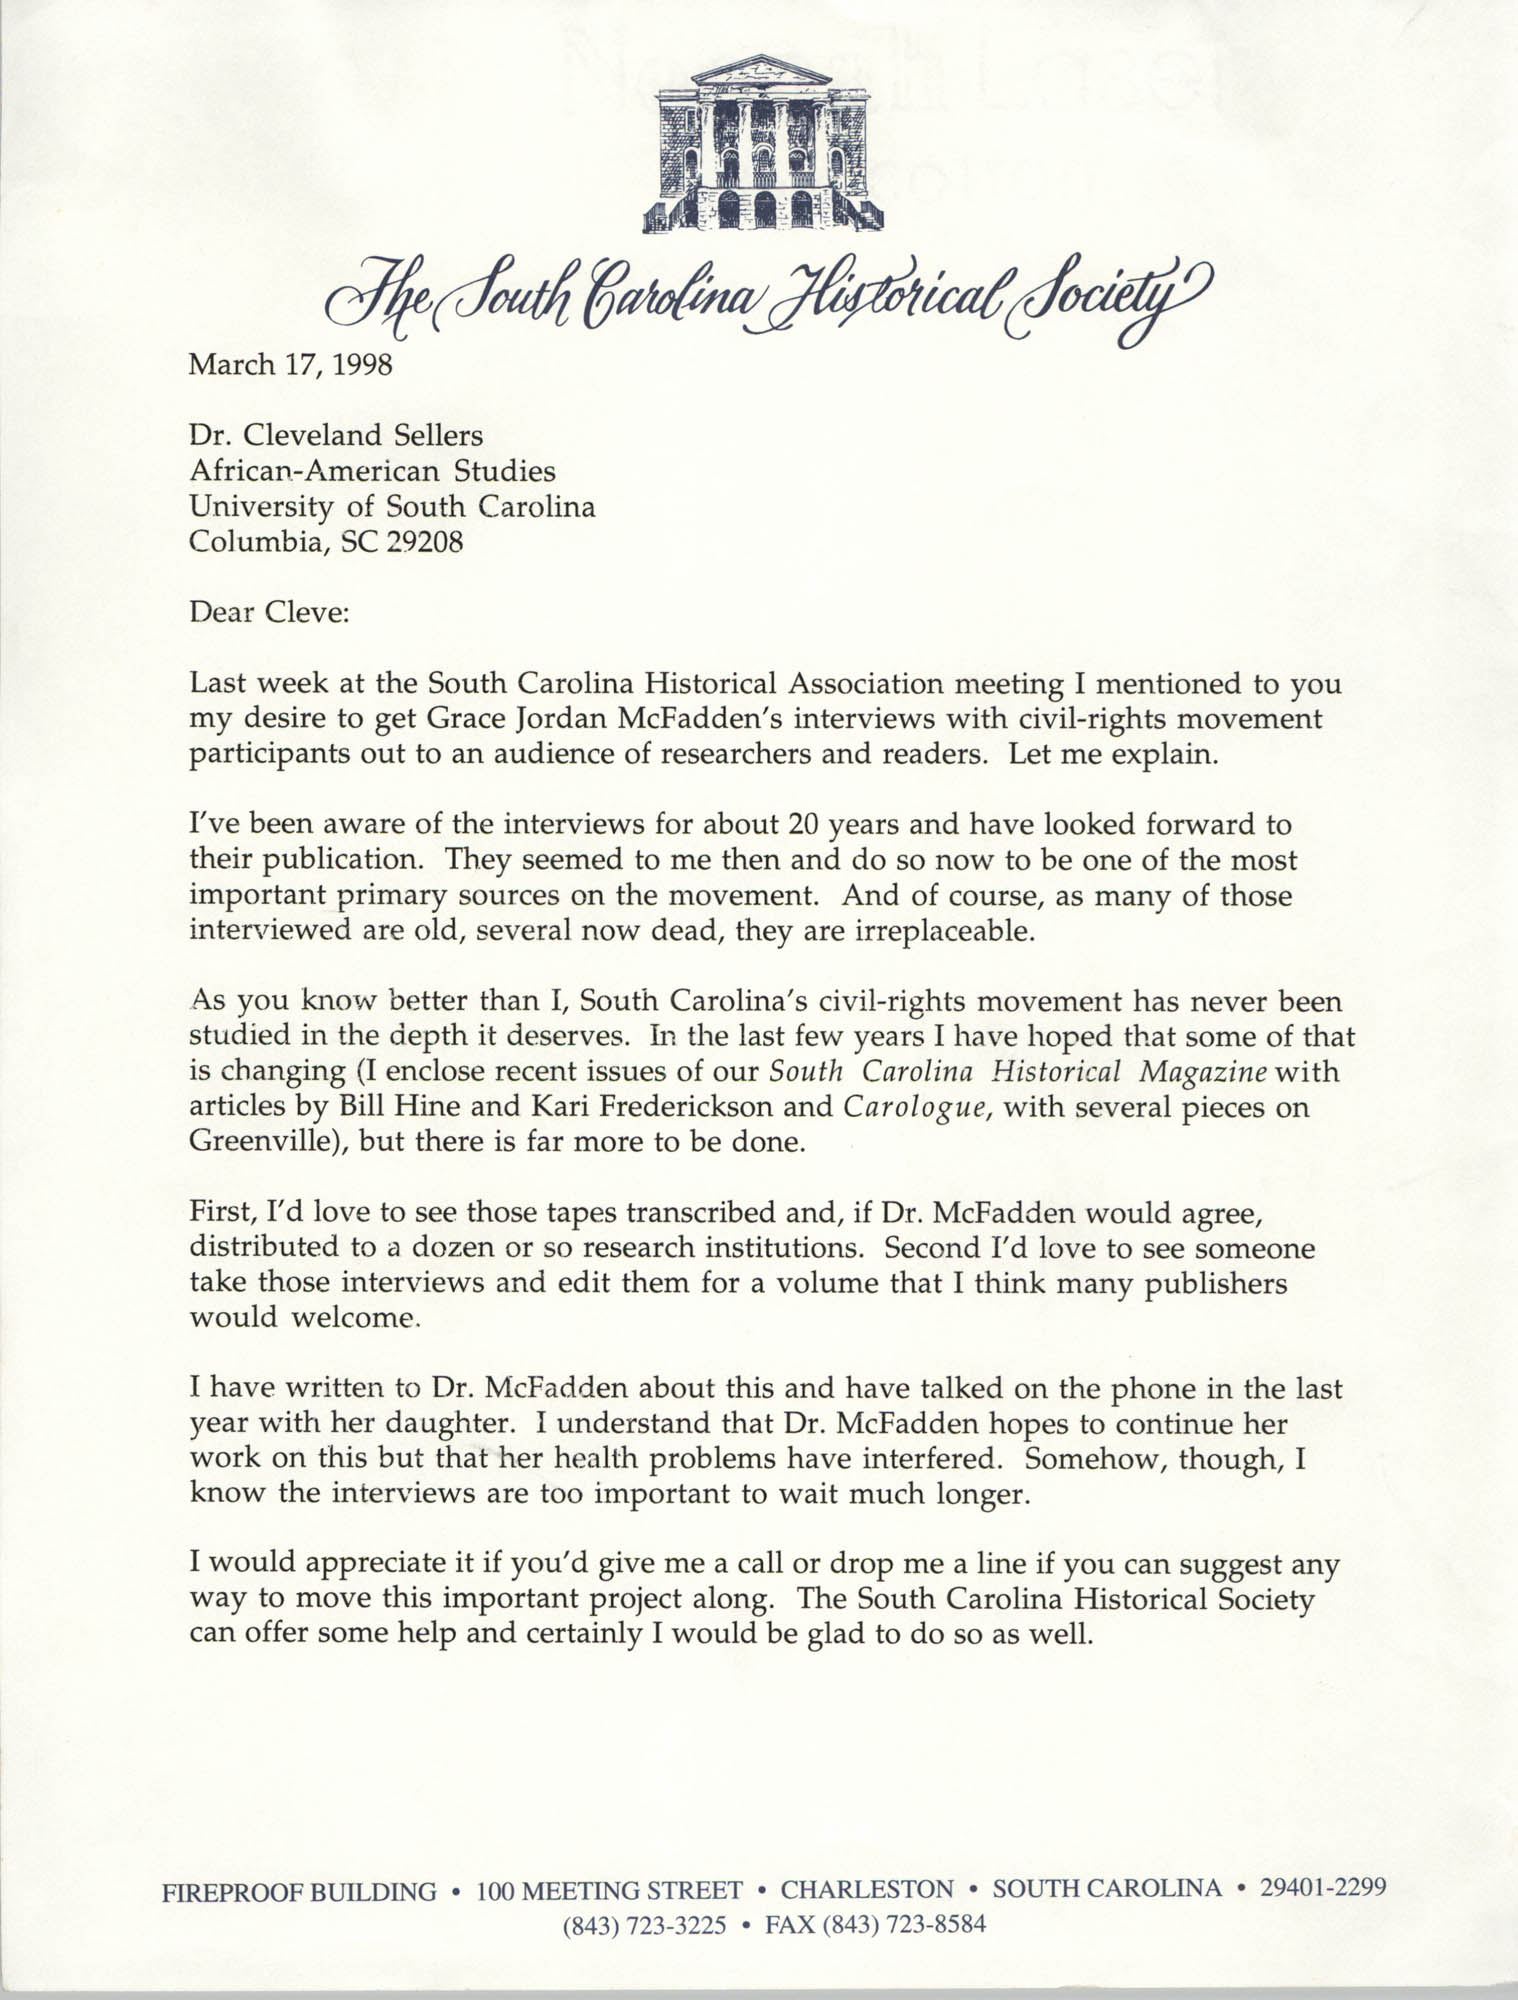 Letter from Stephen Hoffius to Cleveland Sellers, March 17, 1998